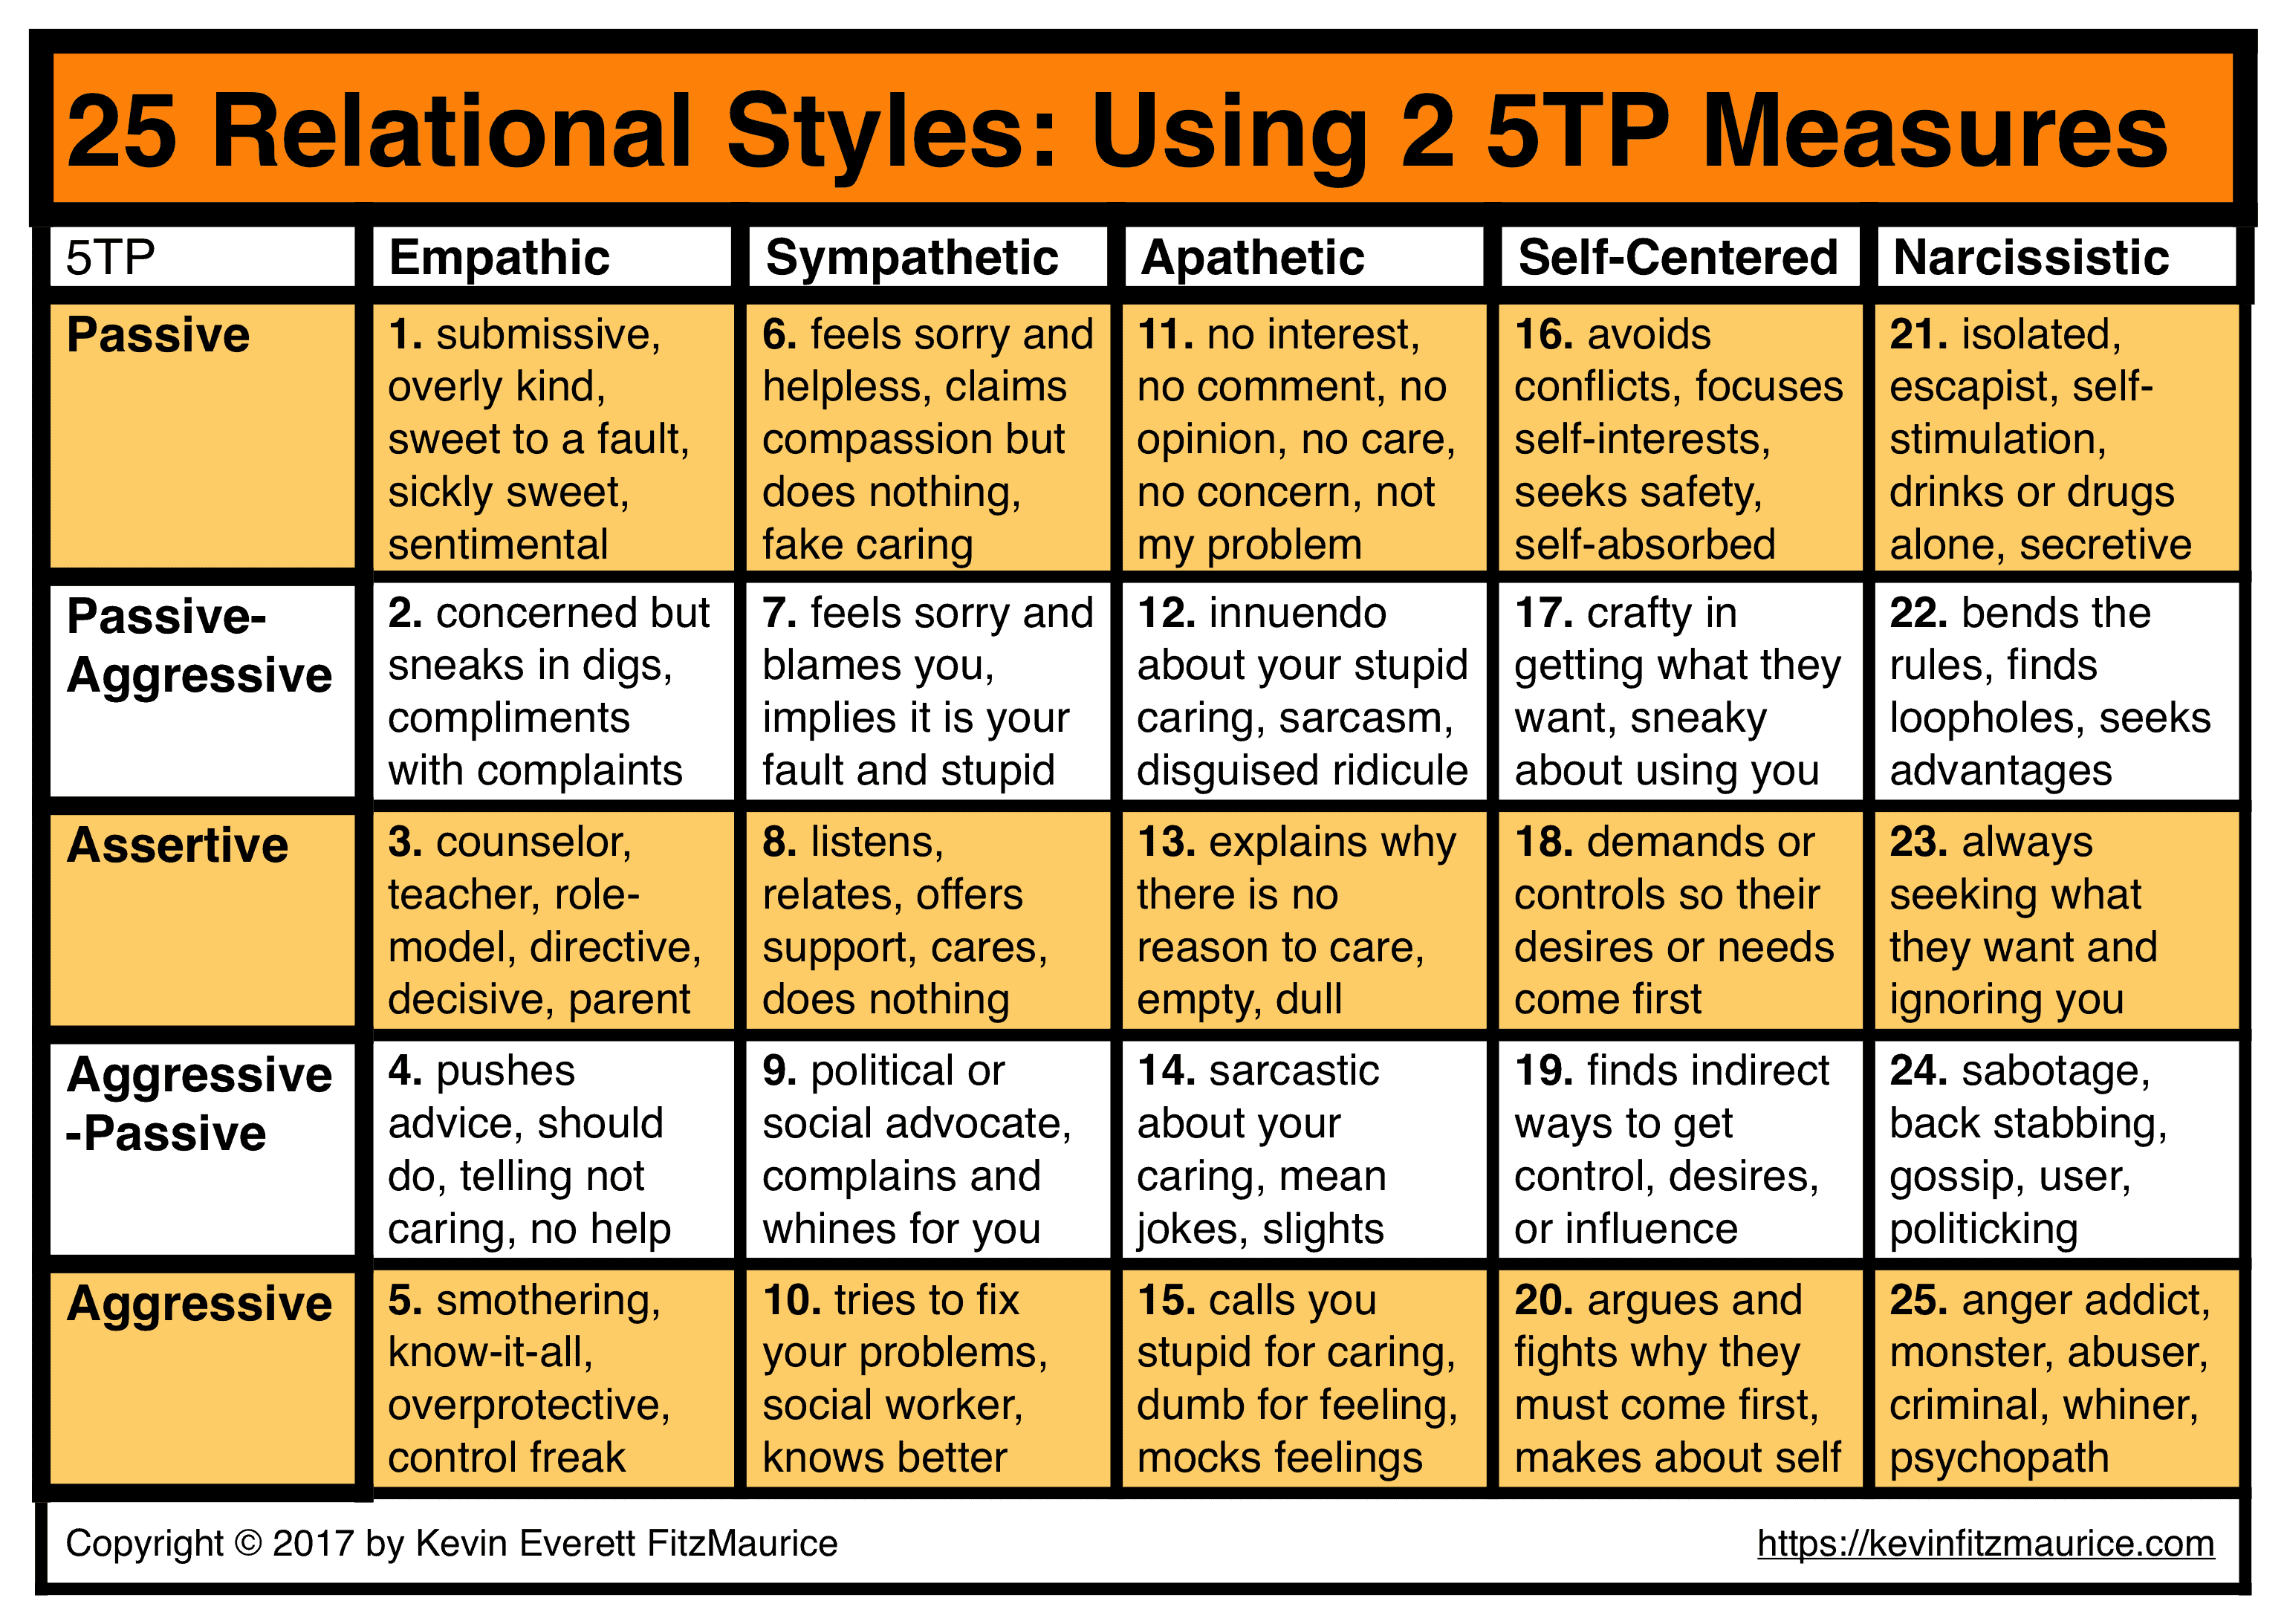 25 Relational Styles from 5TP